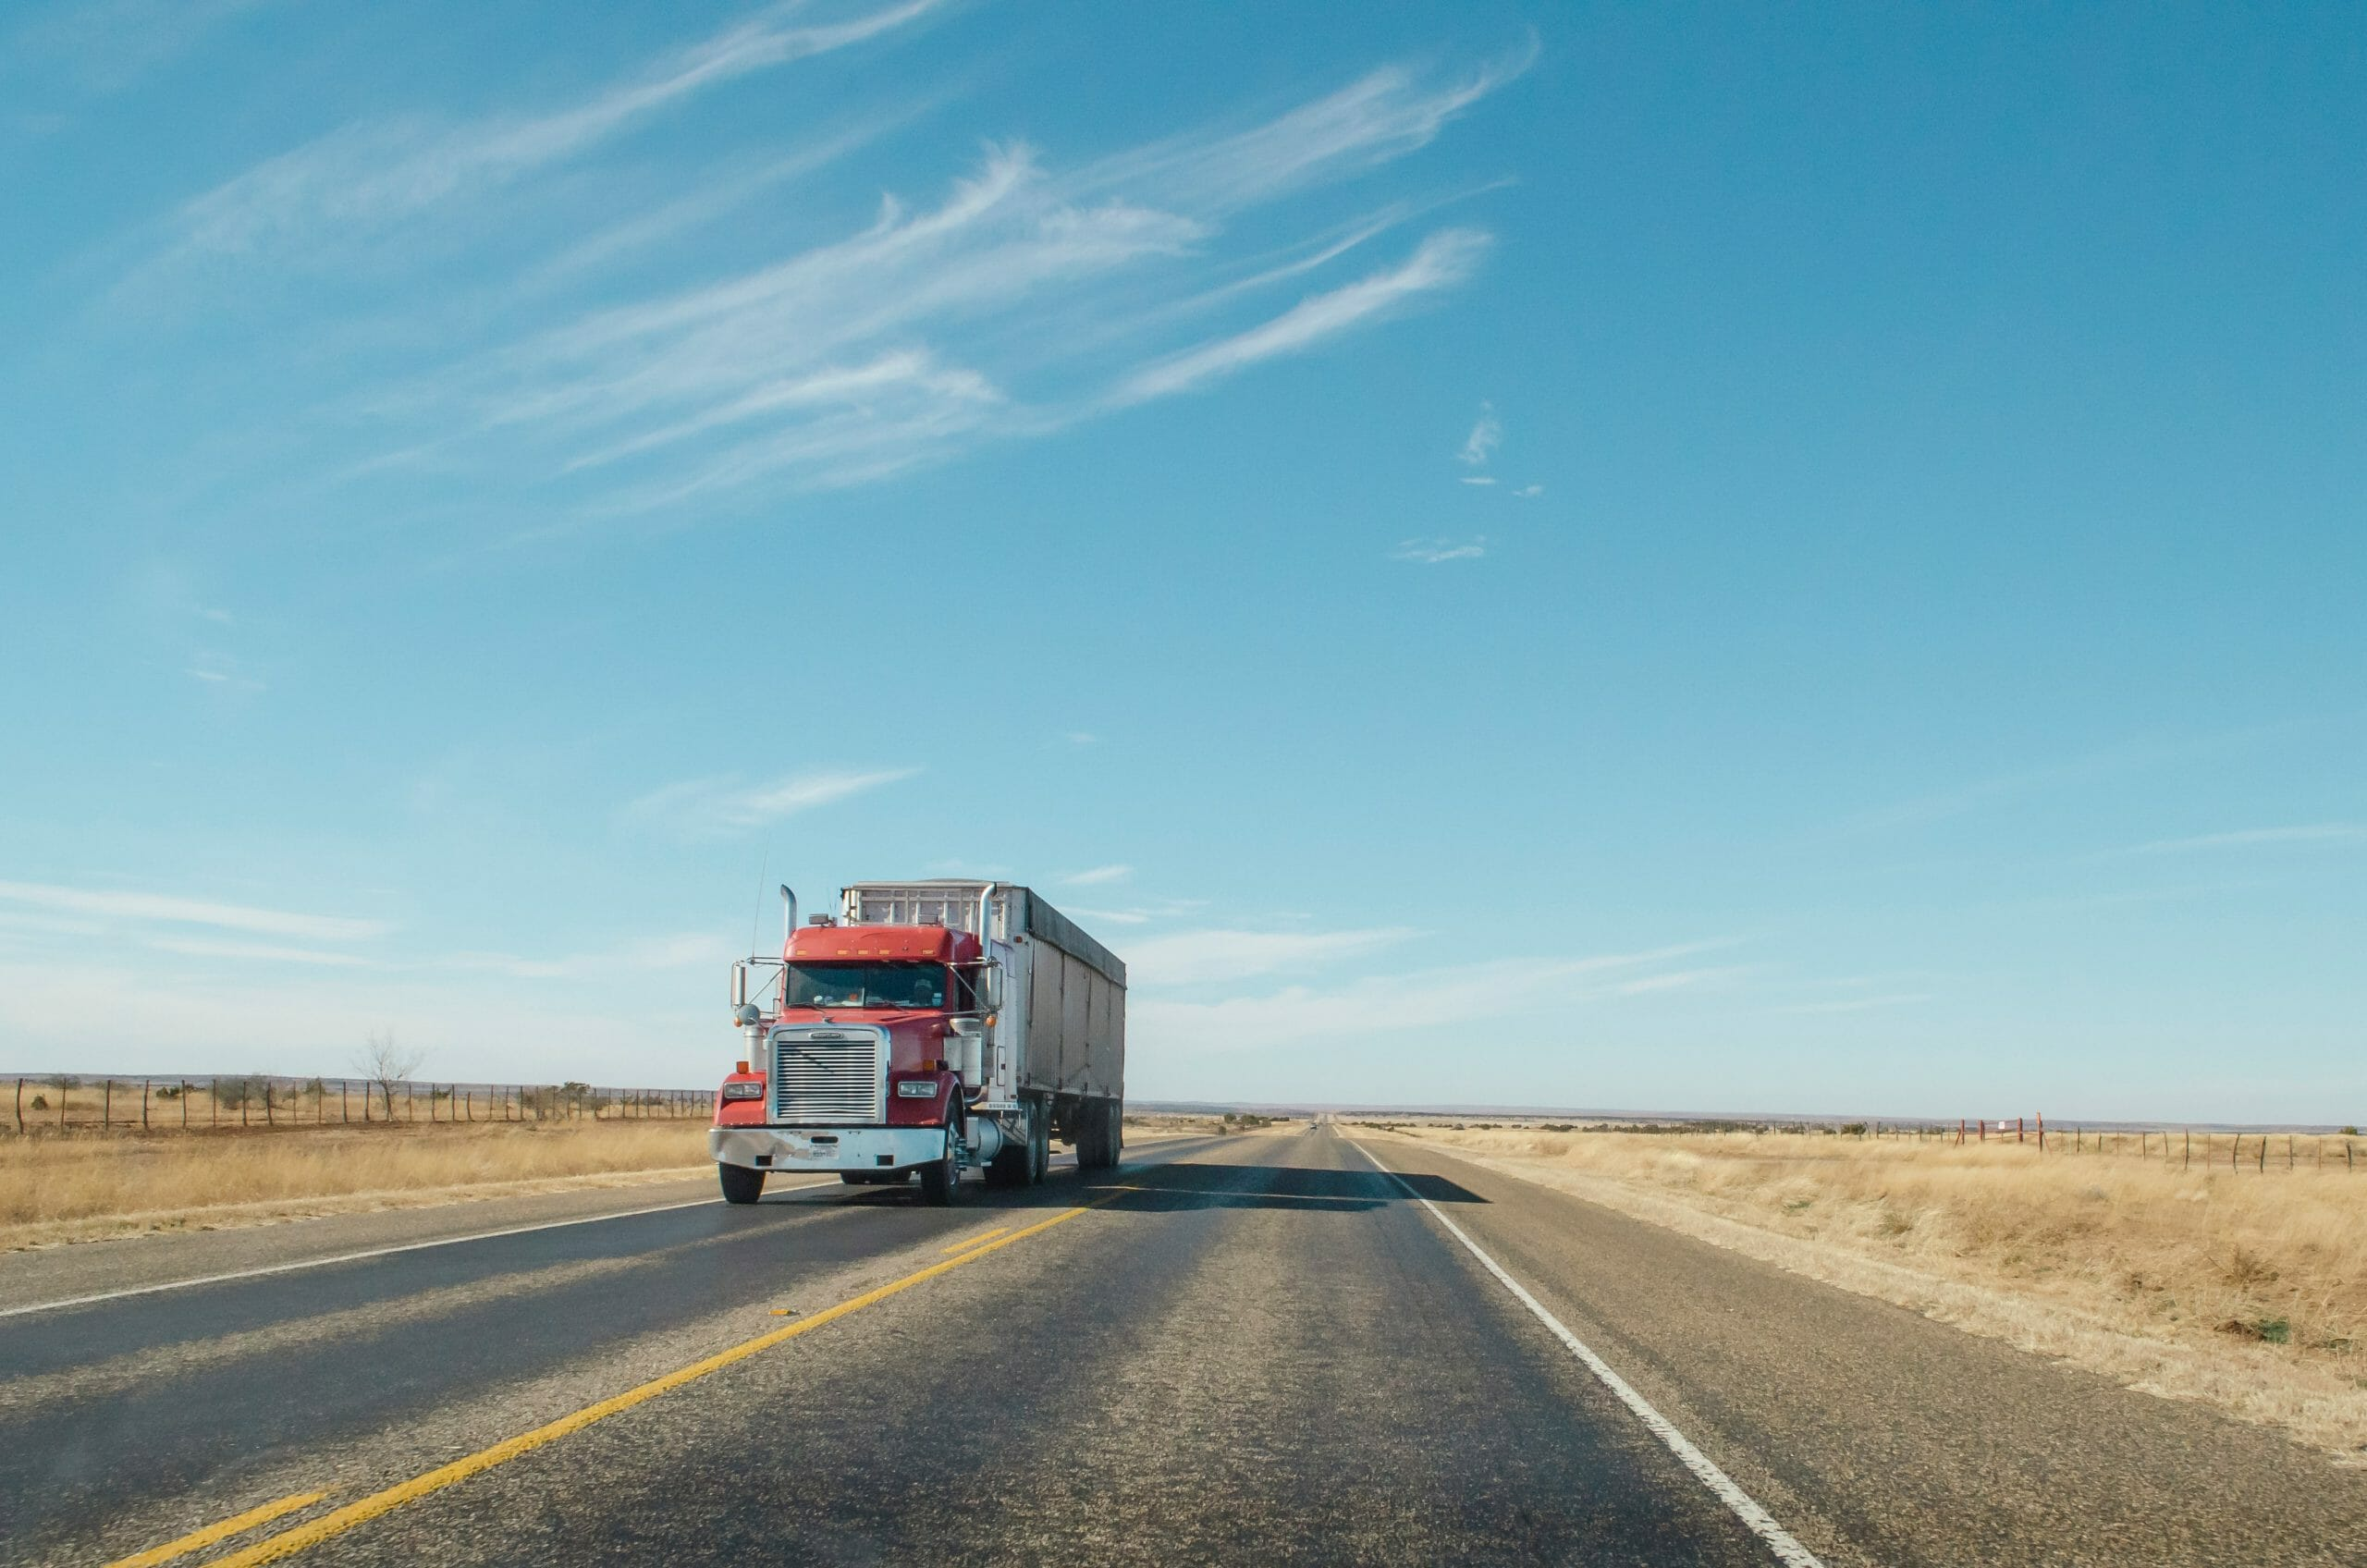 Car vs Truck: What To Do If You Were In A Semi Truck Accident